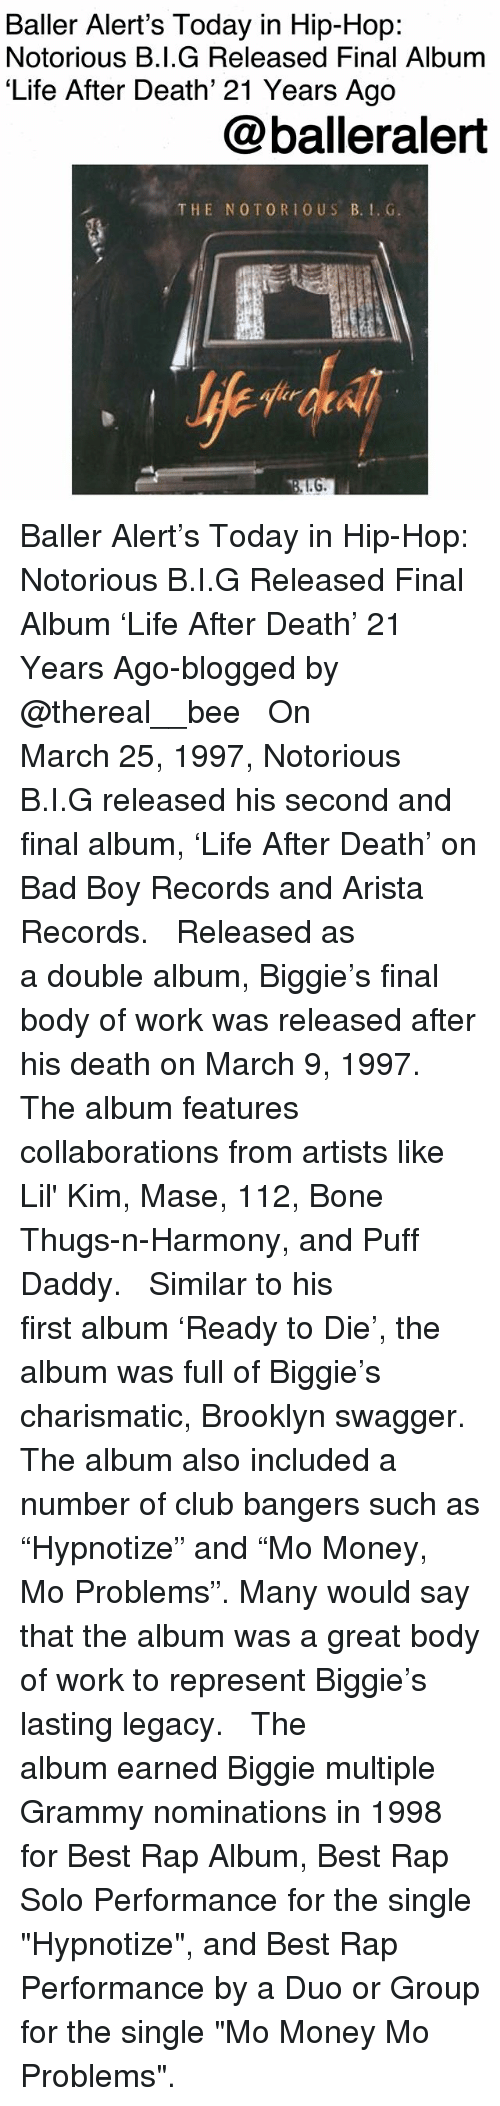 """Bad, Baller Alert, and Bone Thugs N Harmony: Baller Alert's Today in Hip-Hop:  Notorious B.I.G Released Final Album  'Life After Death' 21 Years Ago  @balleralert  THE NOTORIO US B.. G Baller Alert's Today in Hip-Hop: Notorious B.I.G Released Final Album 'Life After Death' 21 Years Ago-blogged by @thereal__bee ⠀⠀⠀⠀⠀⠀⠀⠀⠀ ⠀⠀ On March 25, 1997, Notorious B.I.G released his second and final album, 'Life After Death' on Bad Boy Records and Arista Records. ⠀⠀⠀⠀⠀⠀⠀⠀⠀ ⠀⠀ Released as a double album, Biggie's final body of work was released after his death on March 9, 1997. The album features collaborations from artists like Lil' Kim, Mase, 112, Bone Thugs-n-Harmony, and Puff Daddy. ⠀⠀⠀⠀⠀⠀⠀⠀⠀ ⠀⠀ Similar to his first album 'Ready to Die', the album was full of Biggie's charismatic, Brooklyn swagger. The album also included a number of club bangers such as """"Hypnotize"""" and """"Mo Money, Mo Problems"""". Many would say that the album was a great body of work to represent Biggie's lasting legacy. ⠀⠀⠀⠀⠀⠀⠀⠀⠀ ⠀⠀ The album earned Biggie multiple Grammy nominations in 1998 for Best Rap Album, Best Rap Solo Performance for the single """"Hypnotize"""", and Best Rap Performance by a Duo or Group for the single """"Mo Money Mo Problems""""."""